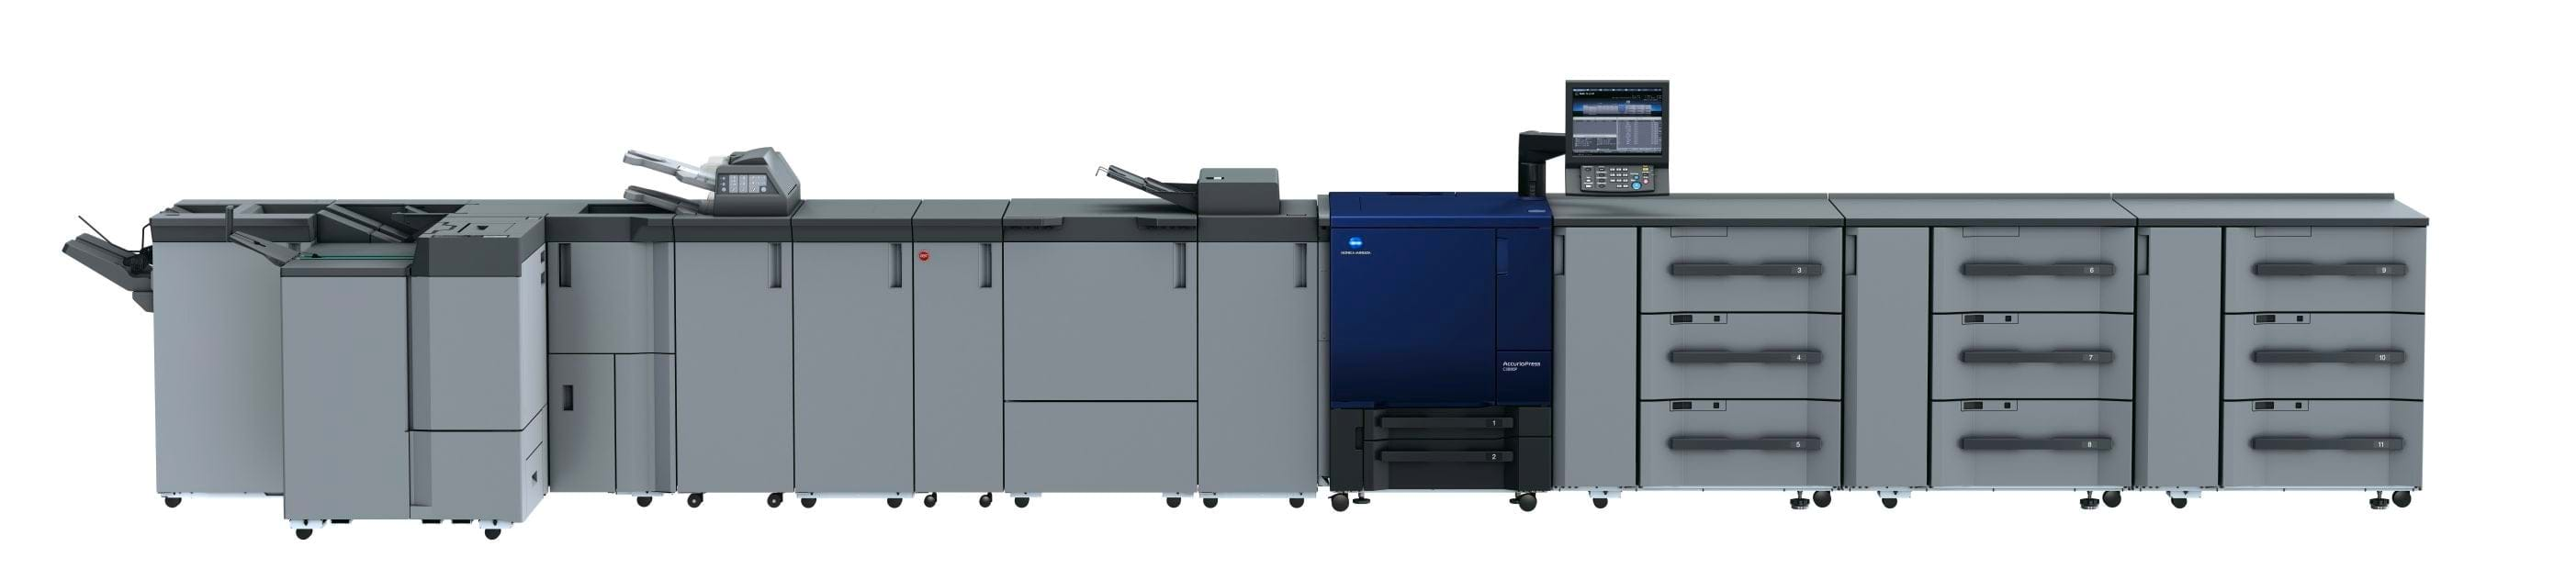 Konica Minolta accurio press c3080p professional printer